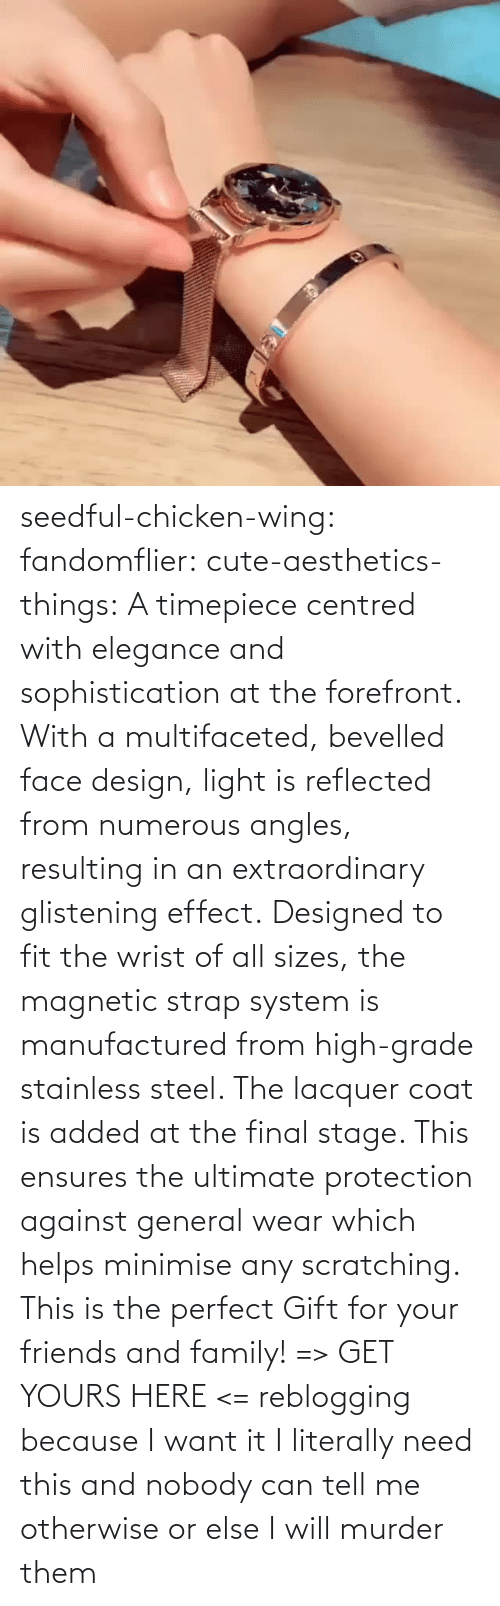 otherwise: seedful-chicken-wing: fandomflier:  cute-aesthetics-things:   A timepiece centred with elegance and sophistication at the forefront. With a multifaceted, bevelled face design, light is reflected from numerous angles, resulting in an extraordinary glistening effect. Designed to fit the wrist of all sizes, the magnetic strap system is manufactured from high-grade stainless steel. The lacquer coat is added at the final stage. This ensures the ultimate protection against general wear which helps minimise any scratching. This is the perfect Gift for your friends and family! => GET YOURS HERE <=   reblogging because I want it  I literally need this and nobody can tell me otherwise or else I will murder them